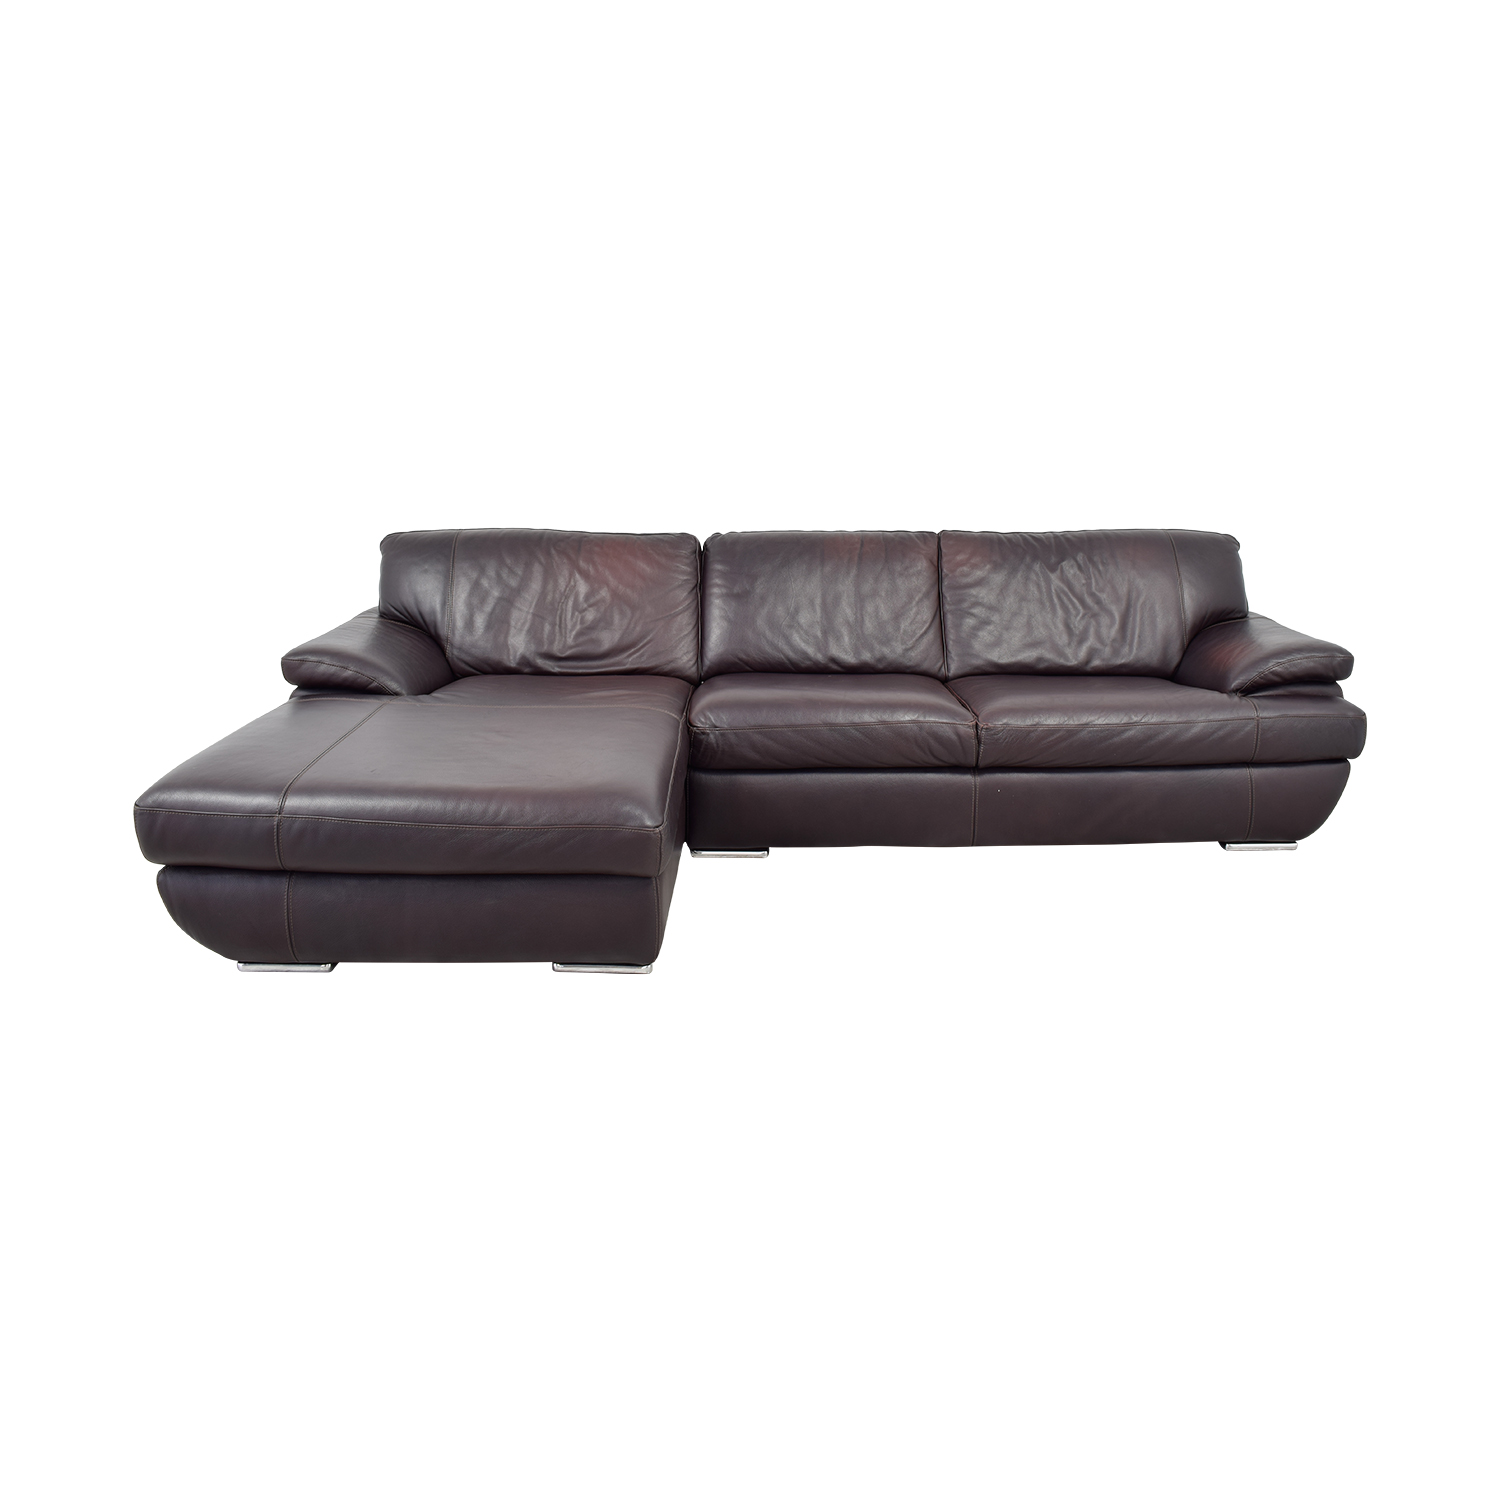 buy Chateau D'Ax Chateau D'Ax Brown Leather Left Chaise Sectional online